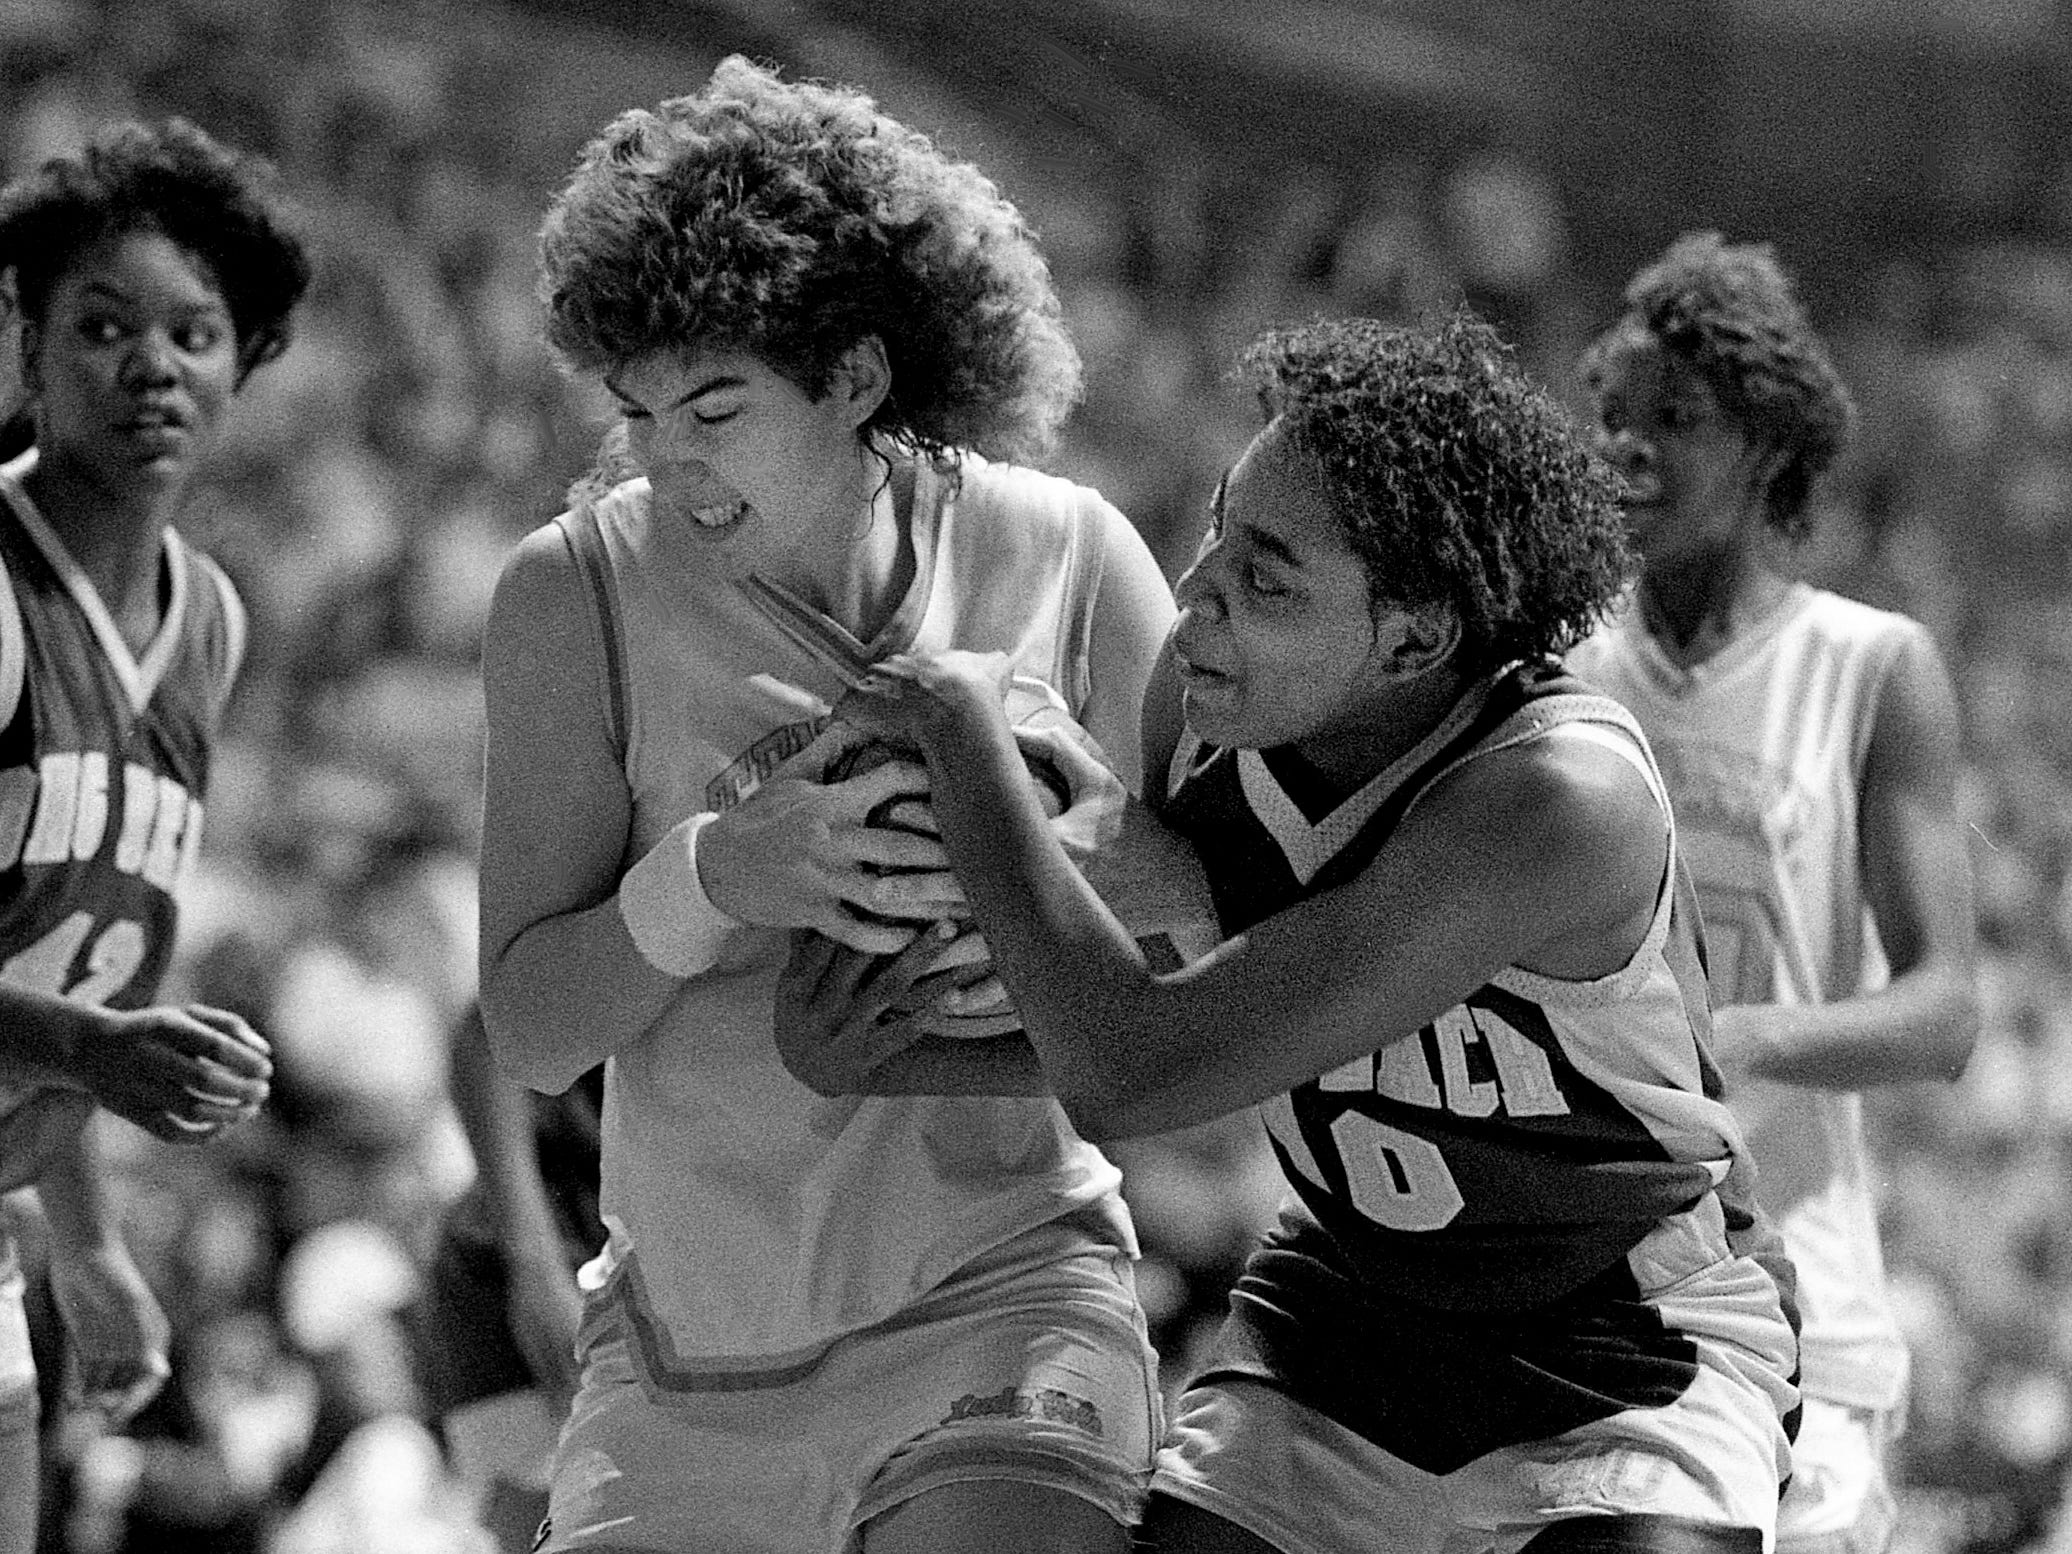 Tennessee senior Shelia Frost, left, wrestles with Long Beach State's Angeliaue Lee for the ball. The Lady Vols went on to a 94-80 victory in the NCAA East Regional championship game at Western Kentucky's Diddle Arena in Bowling Green, Kentucky, March 25, 1989.